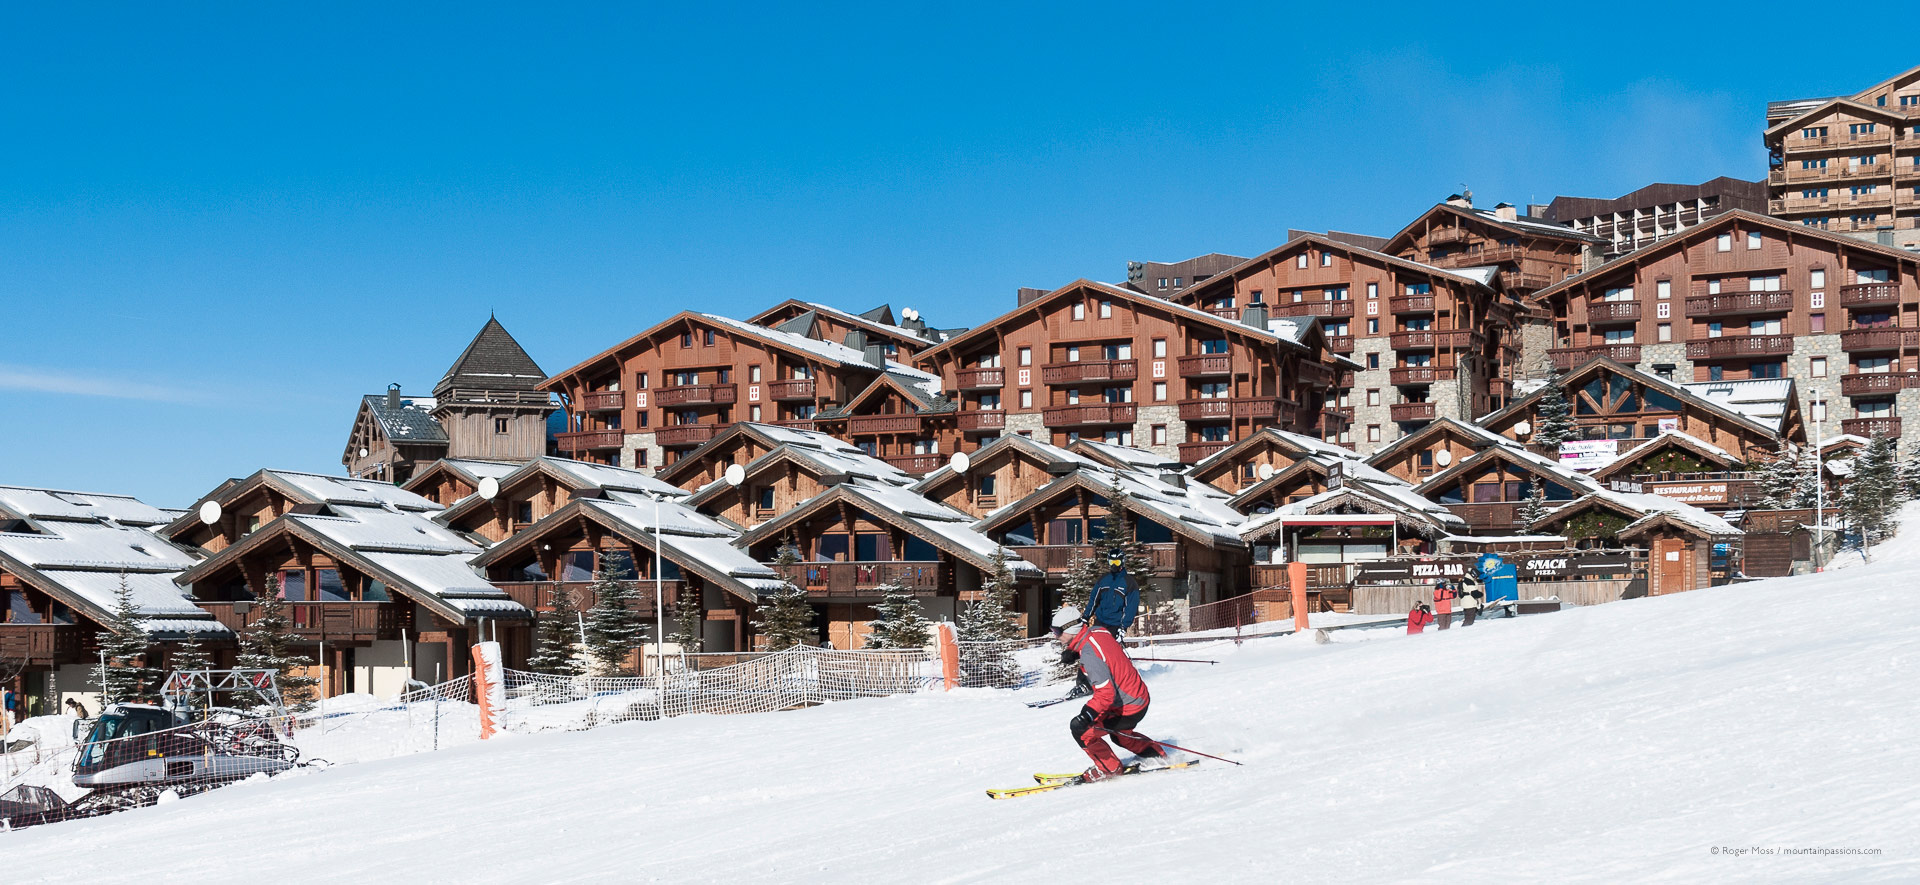 Skier passing recent chalet-style village development at Les Menuires.